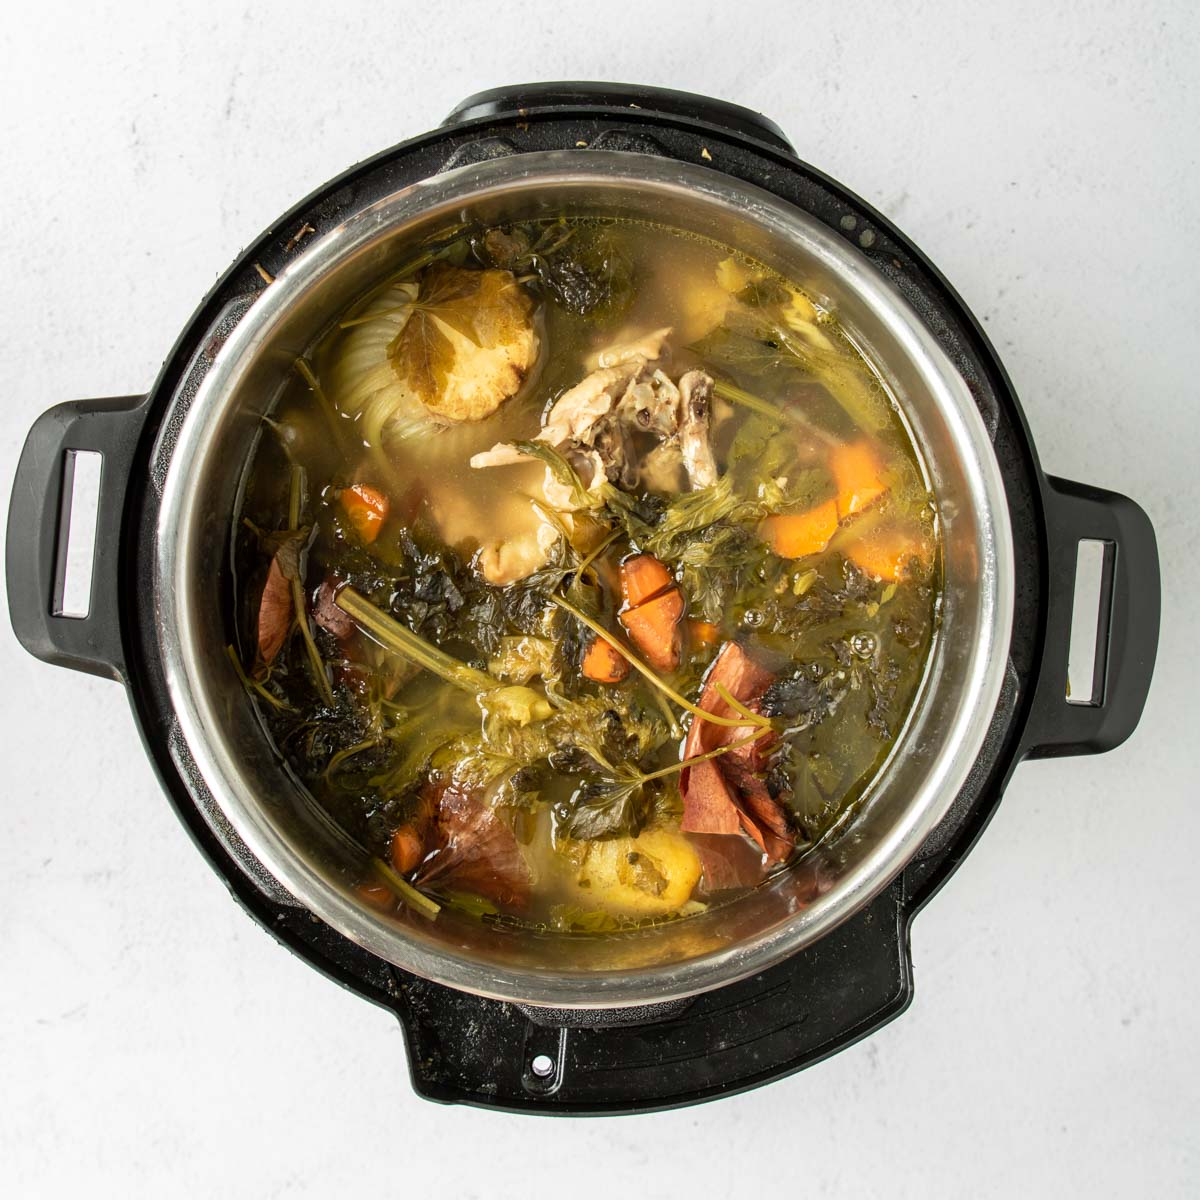 chicken stock made in the instant pot